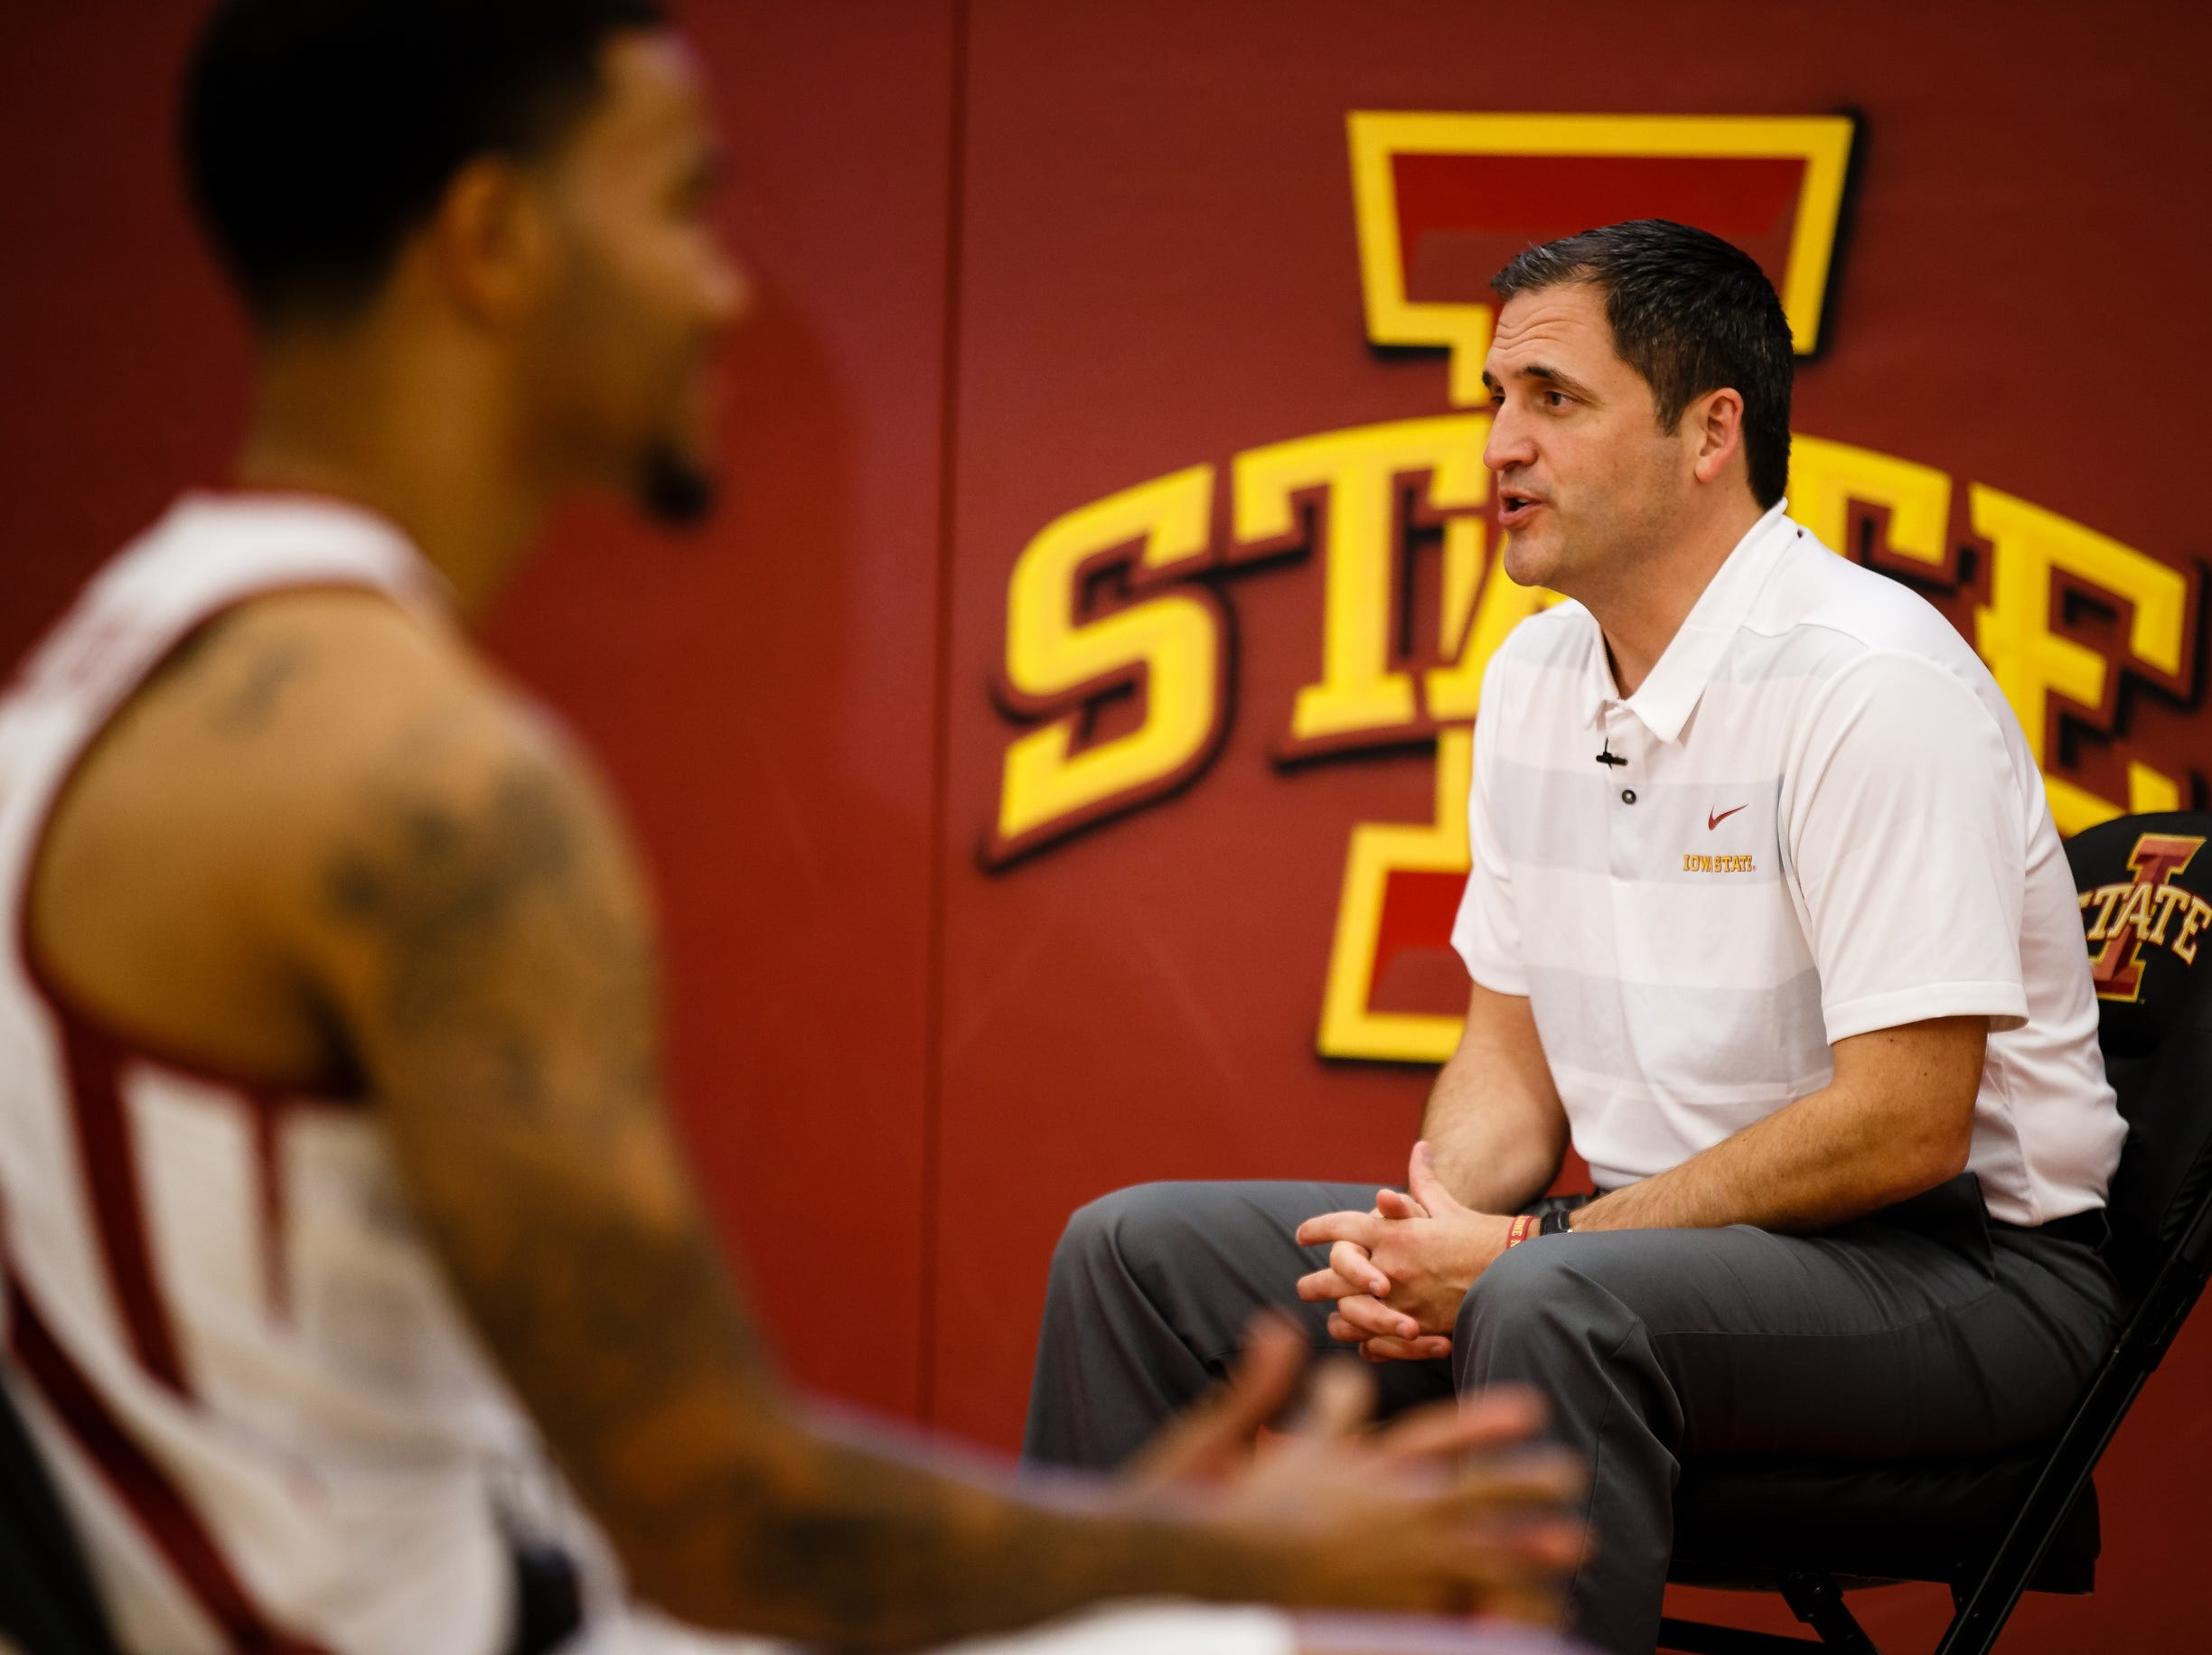 Iowa State mens basketball coach Steve Prohm talks to members of the press during media day on Thursday, Oct. 11, 2018, in Ames.